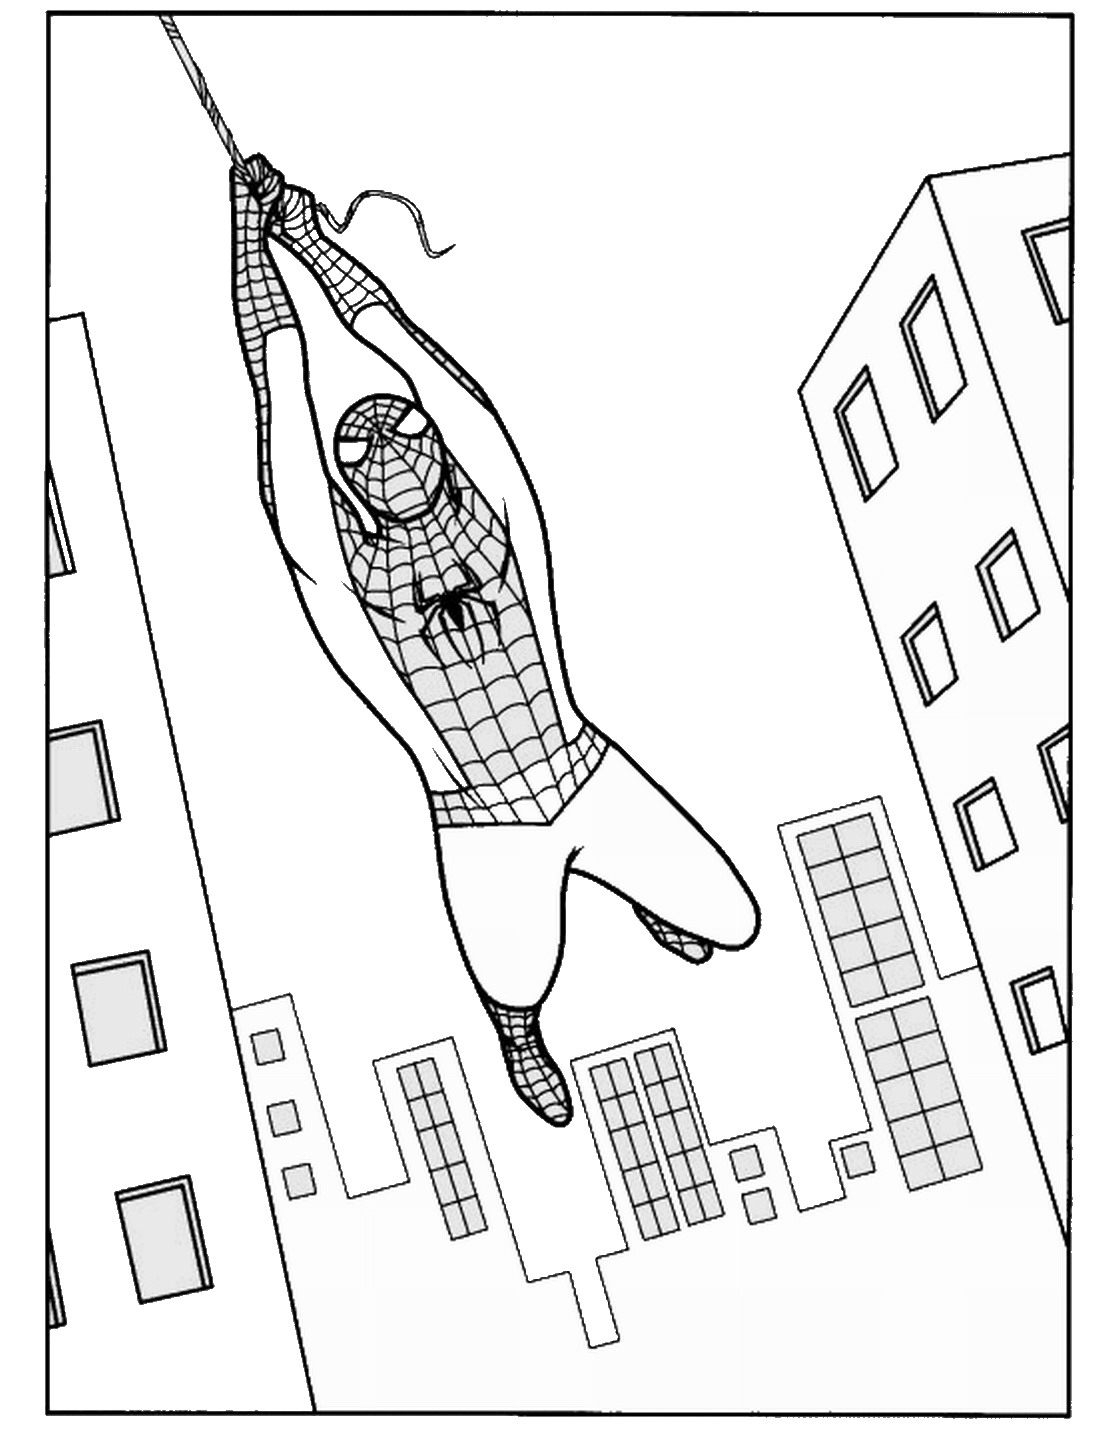 spiderman birthday coloring pages spiderman happy birthday images in 2020 lego coloring coloring pages spiderman birthday